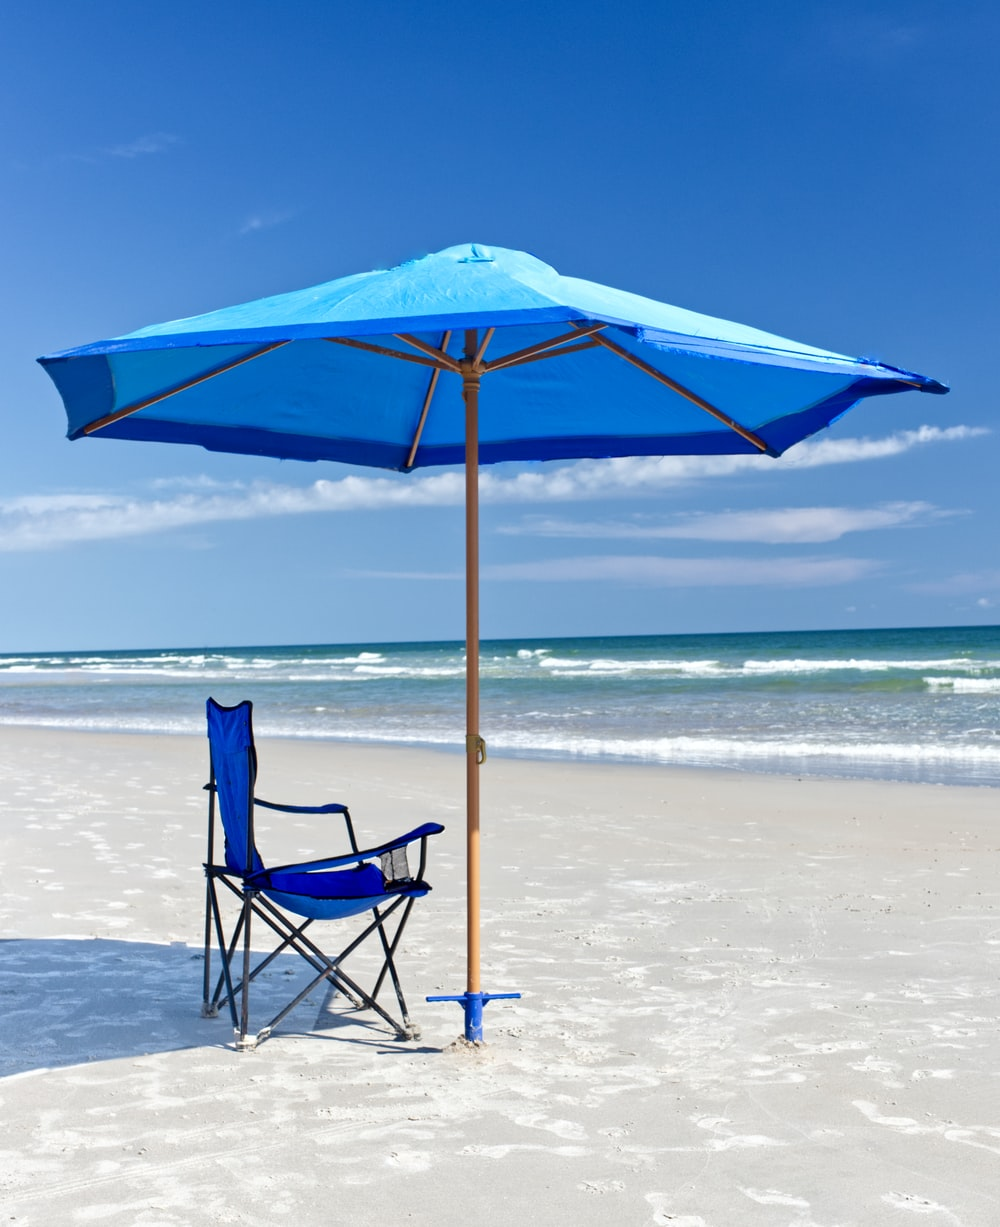 blue and black folding chair on beach during daytime